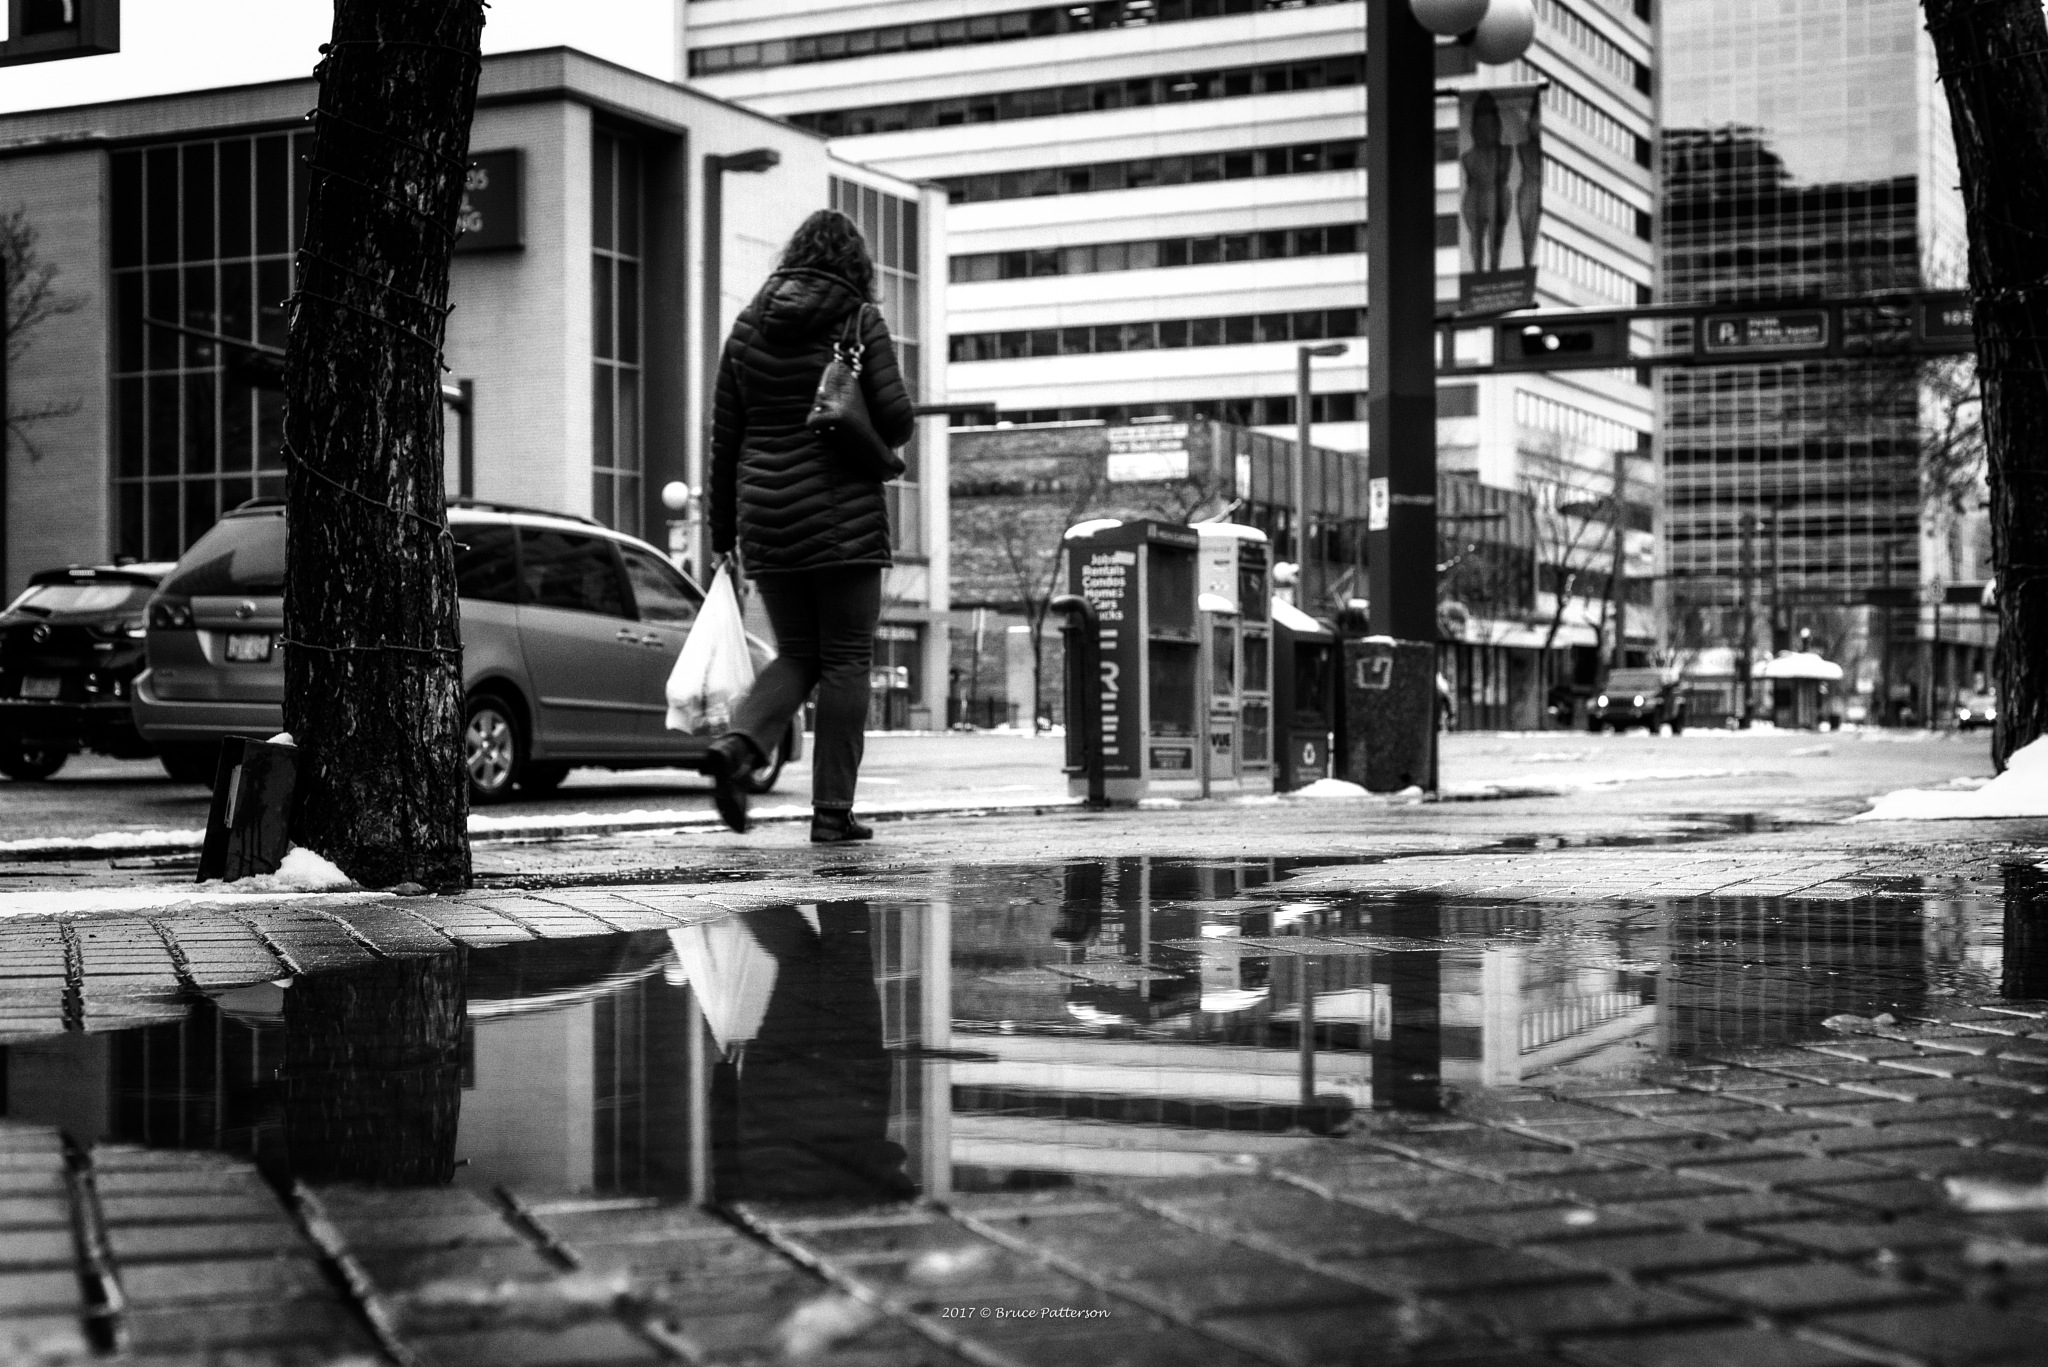 Another Wet Day by Bruce Patterson